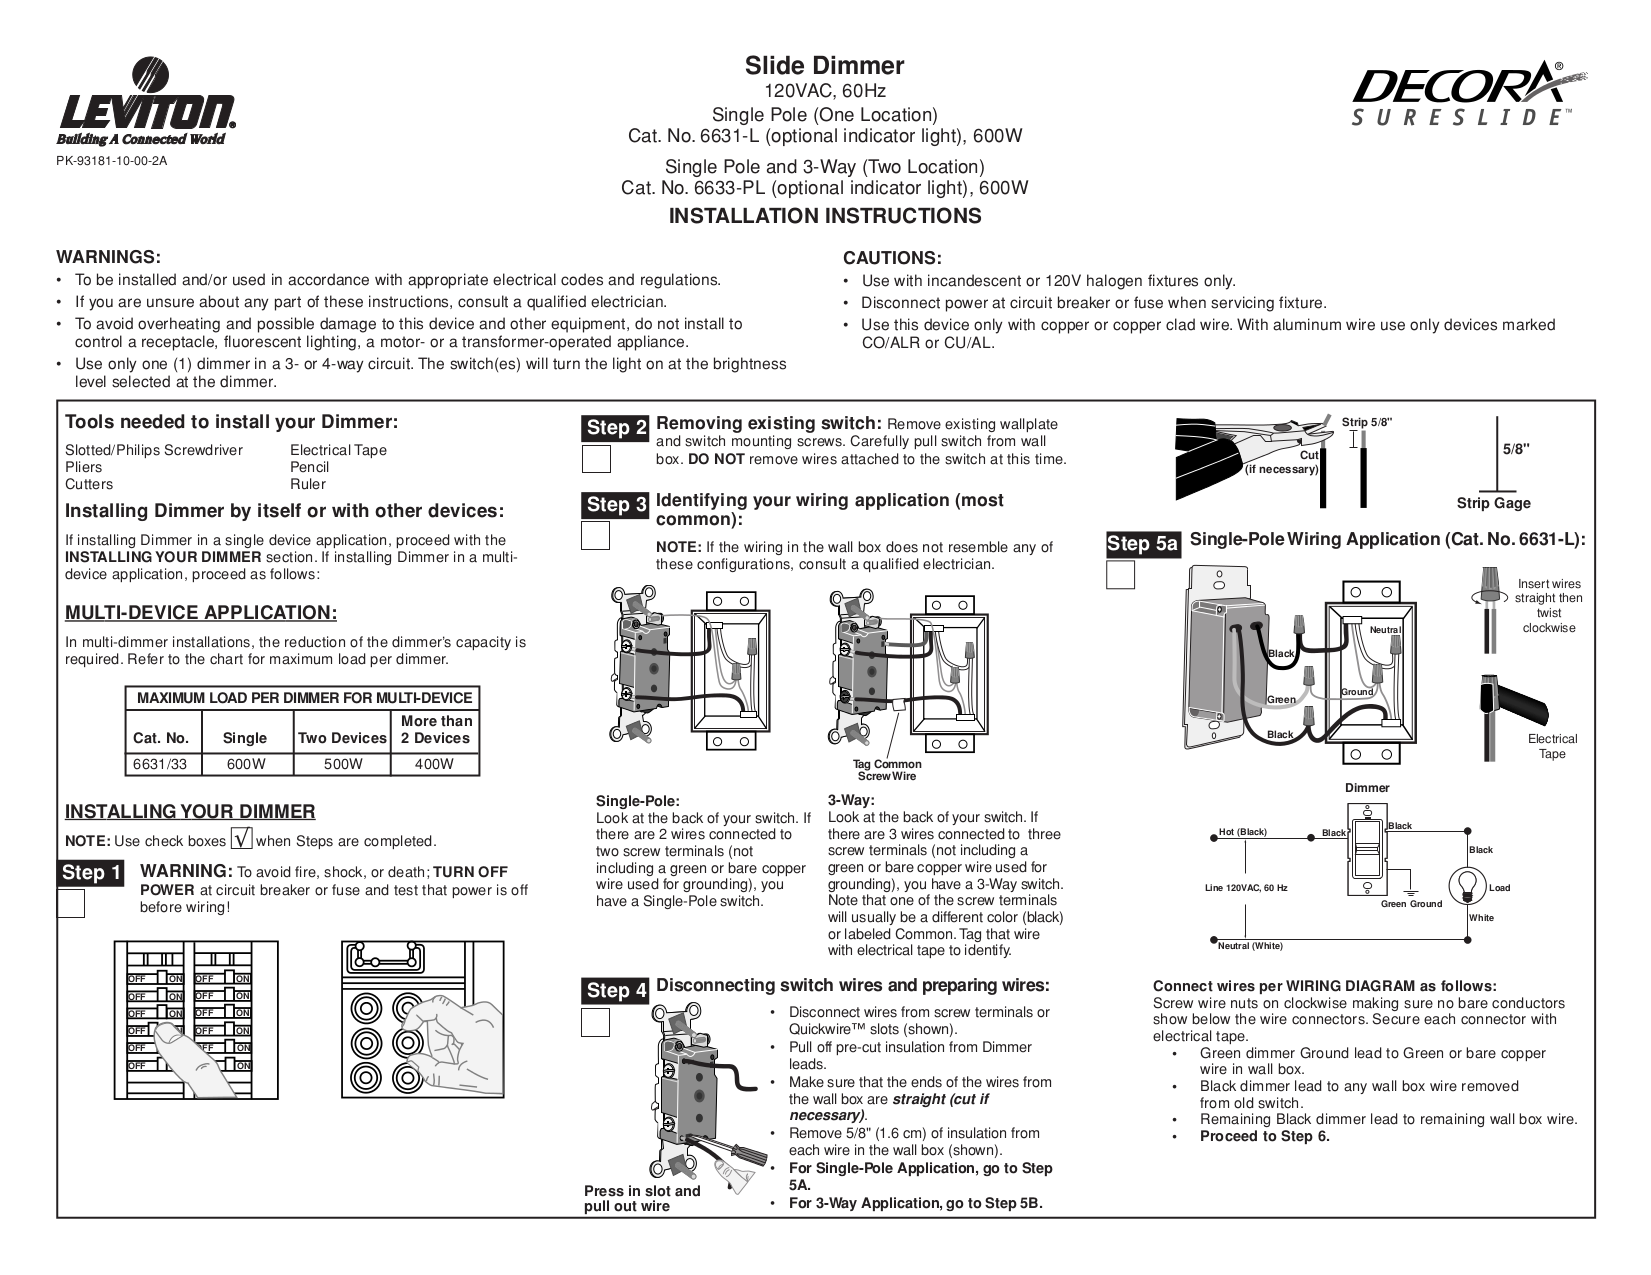 [SCHEMATICS_4HG]  🏆 [DIAGRAM in Pictures Database] Leviton 6633 P Wiring Diagram Just  Download or Read Wiring Diagram - DIAGRAM-MEANING.ONYXUM.COM | Leviton 6633 P Wiring Diagram |  | Complete Diagram Picture Database - Onyxum.com